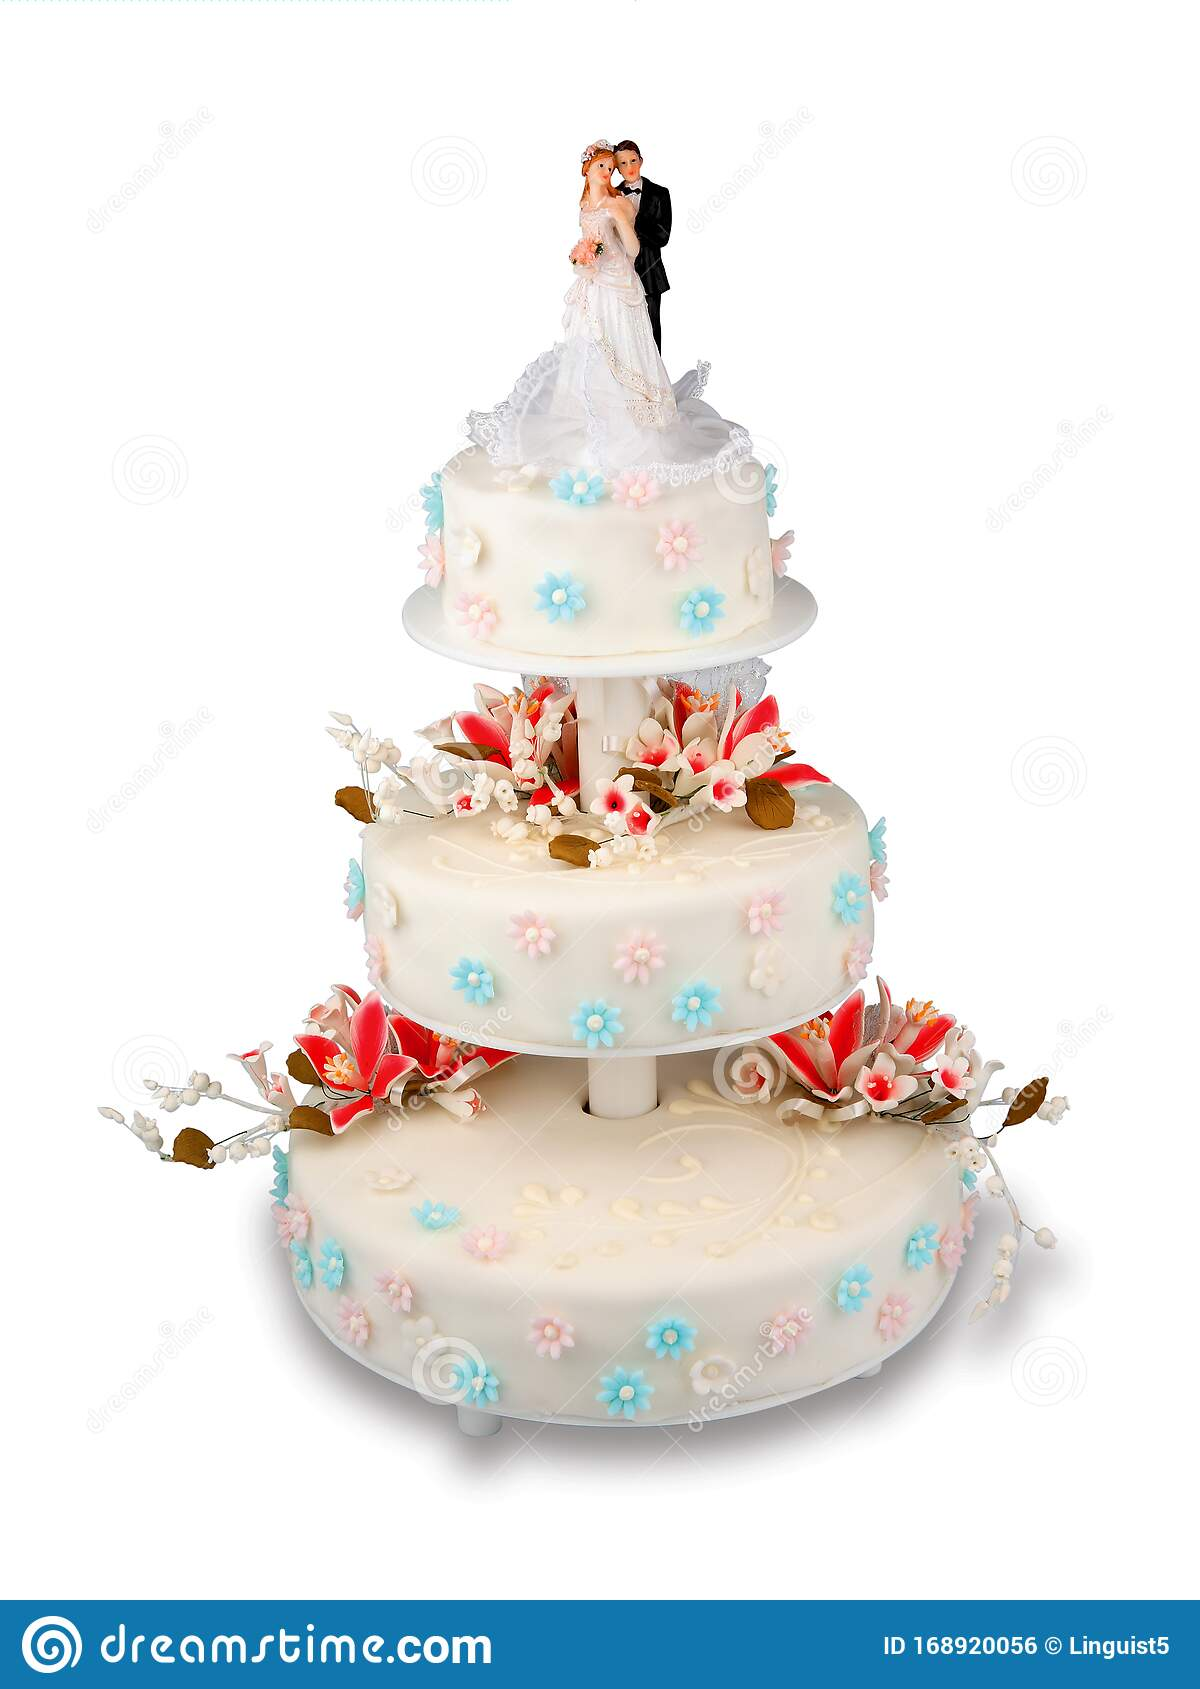 Multilayered Wedding Cake With Frosting And Figures Of Bride And Groom Stock Photo Image Of Cake Decorated 168920056